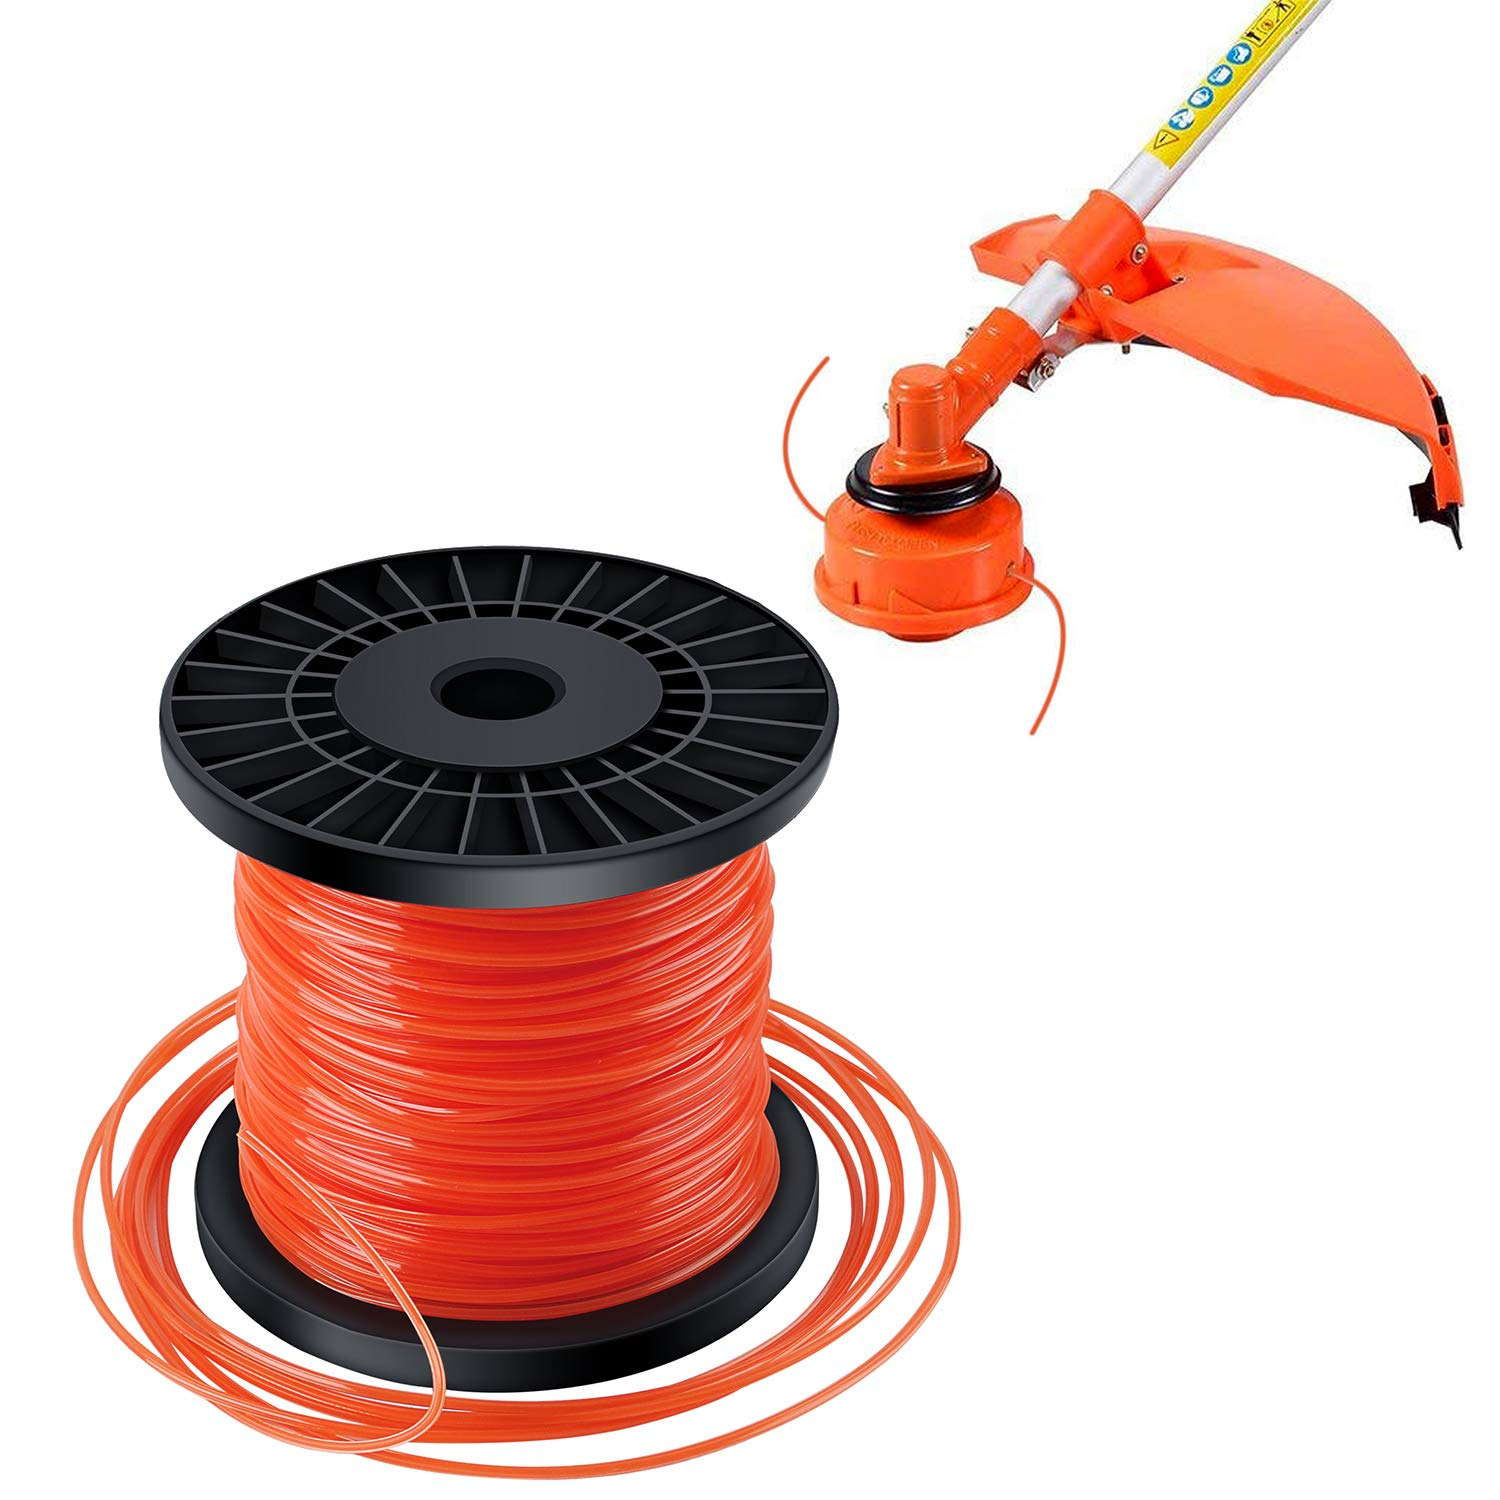 Forever Speed Hilo desbrozadora Nylon Trimmer Strimmer Line ...